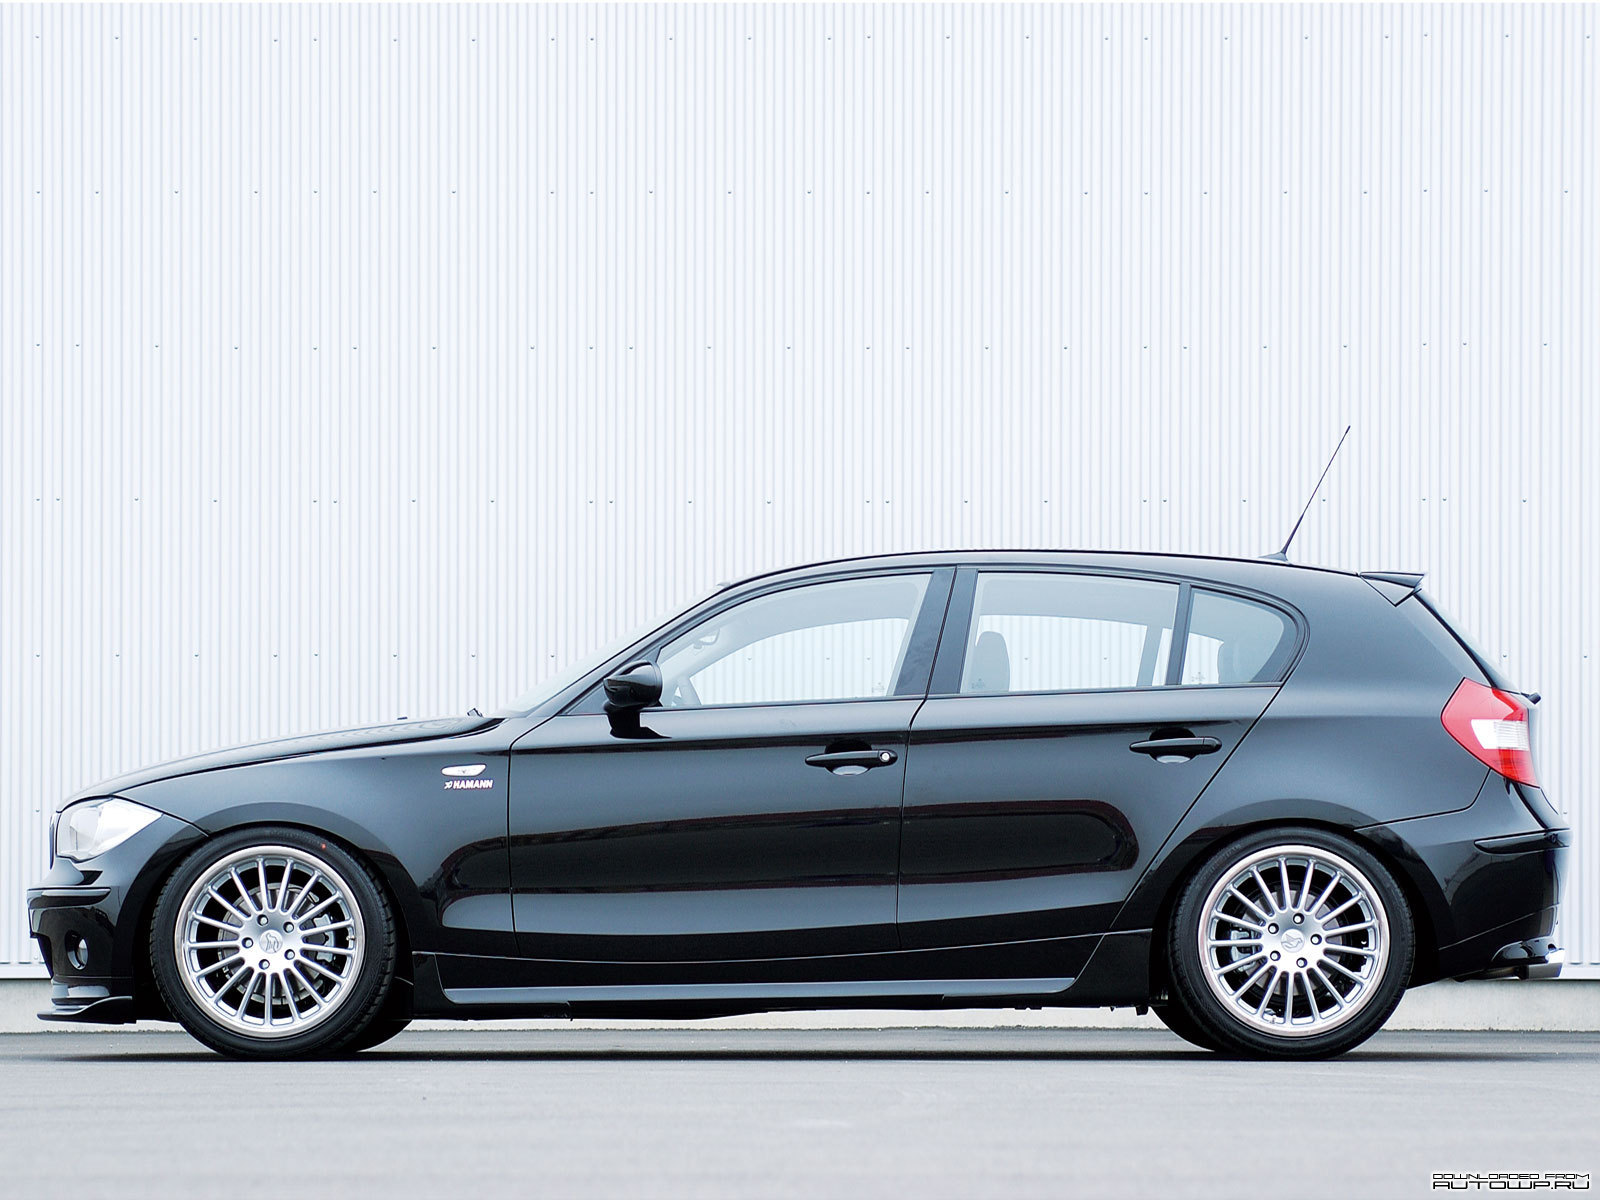 hamann bmw 1 series 5 door e87 photos photogallery with 18 pics. Black Bedroom Furniture Sets. Home Design Ideas